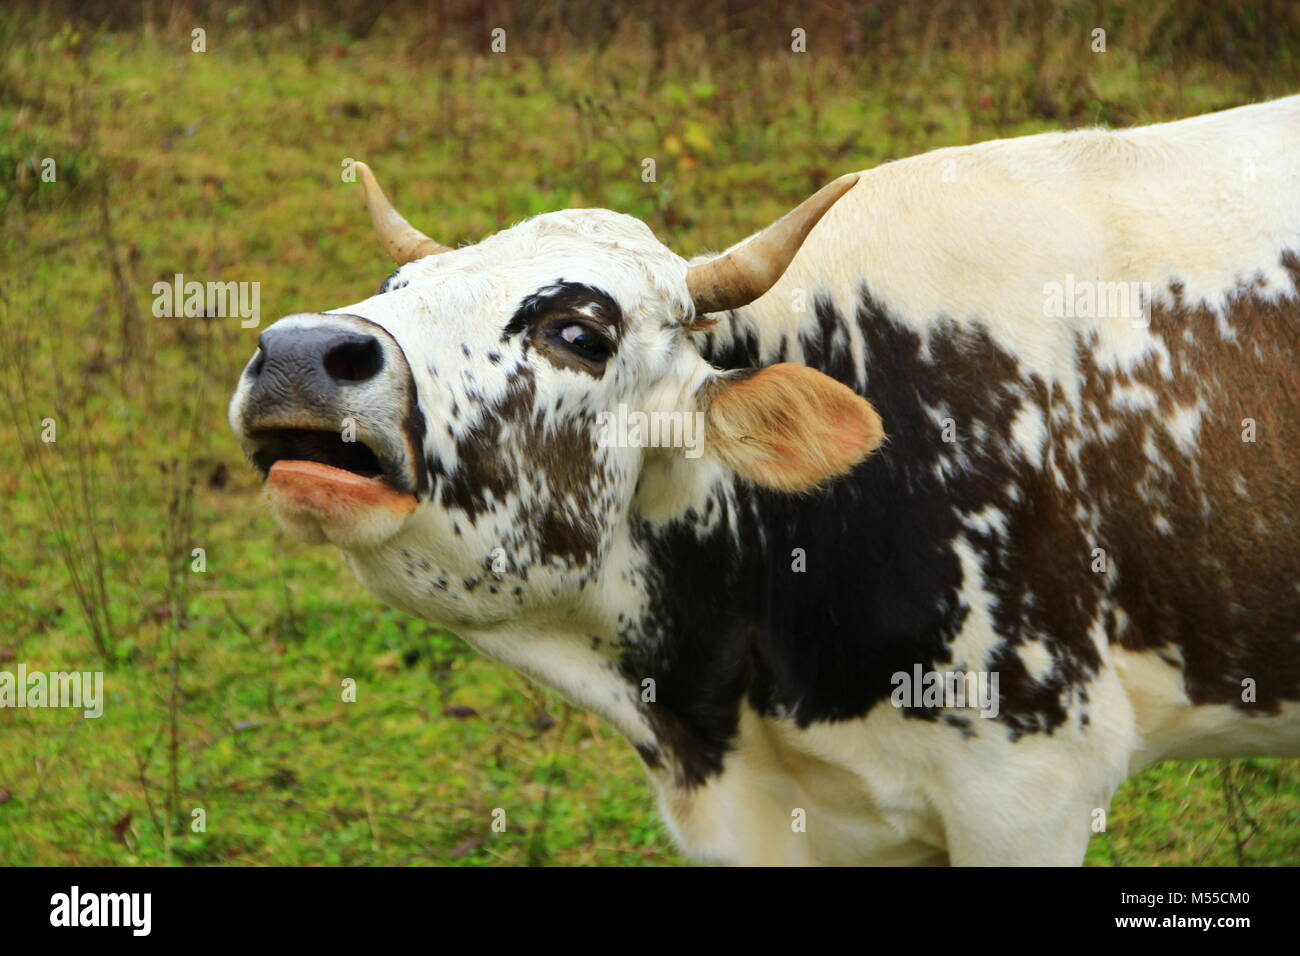 cow cries loudly on the pasture Stock Photo